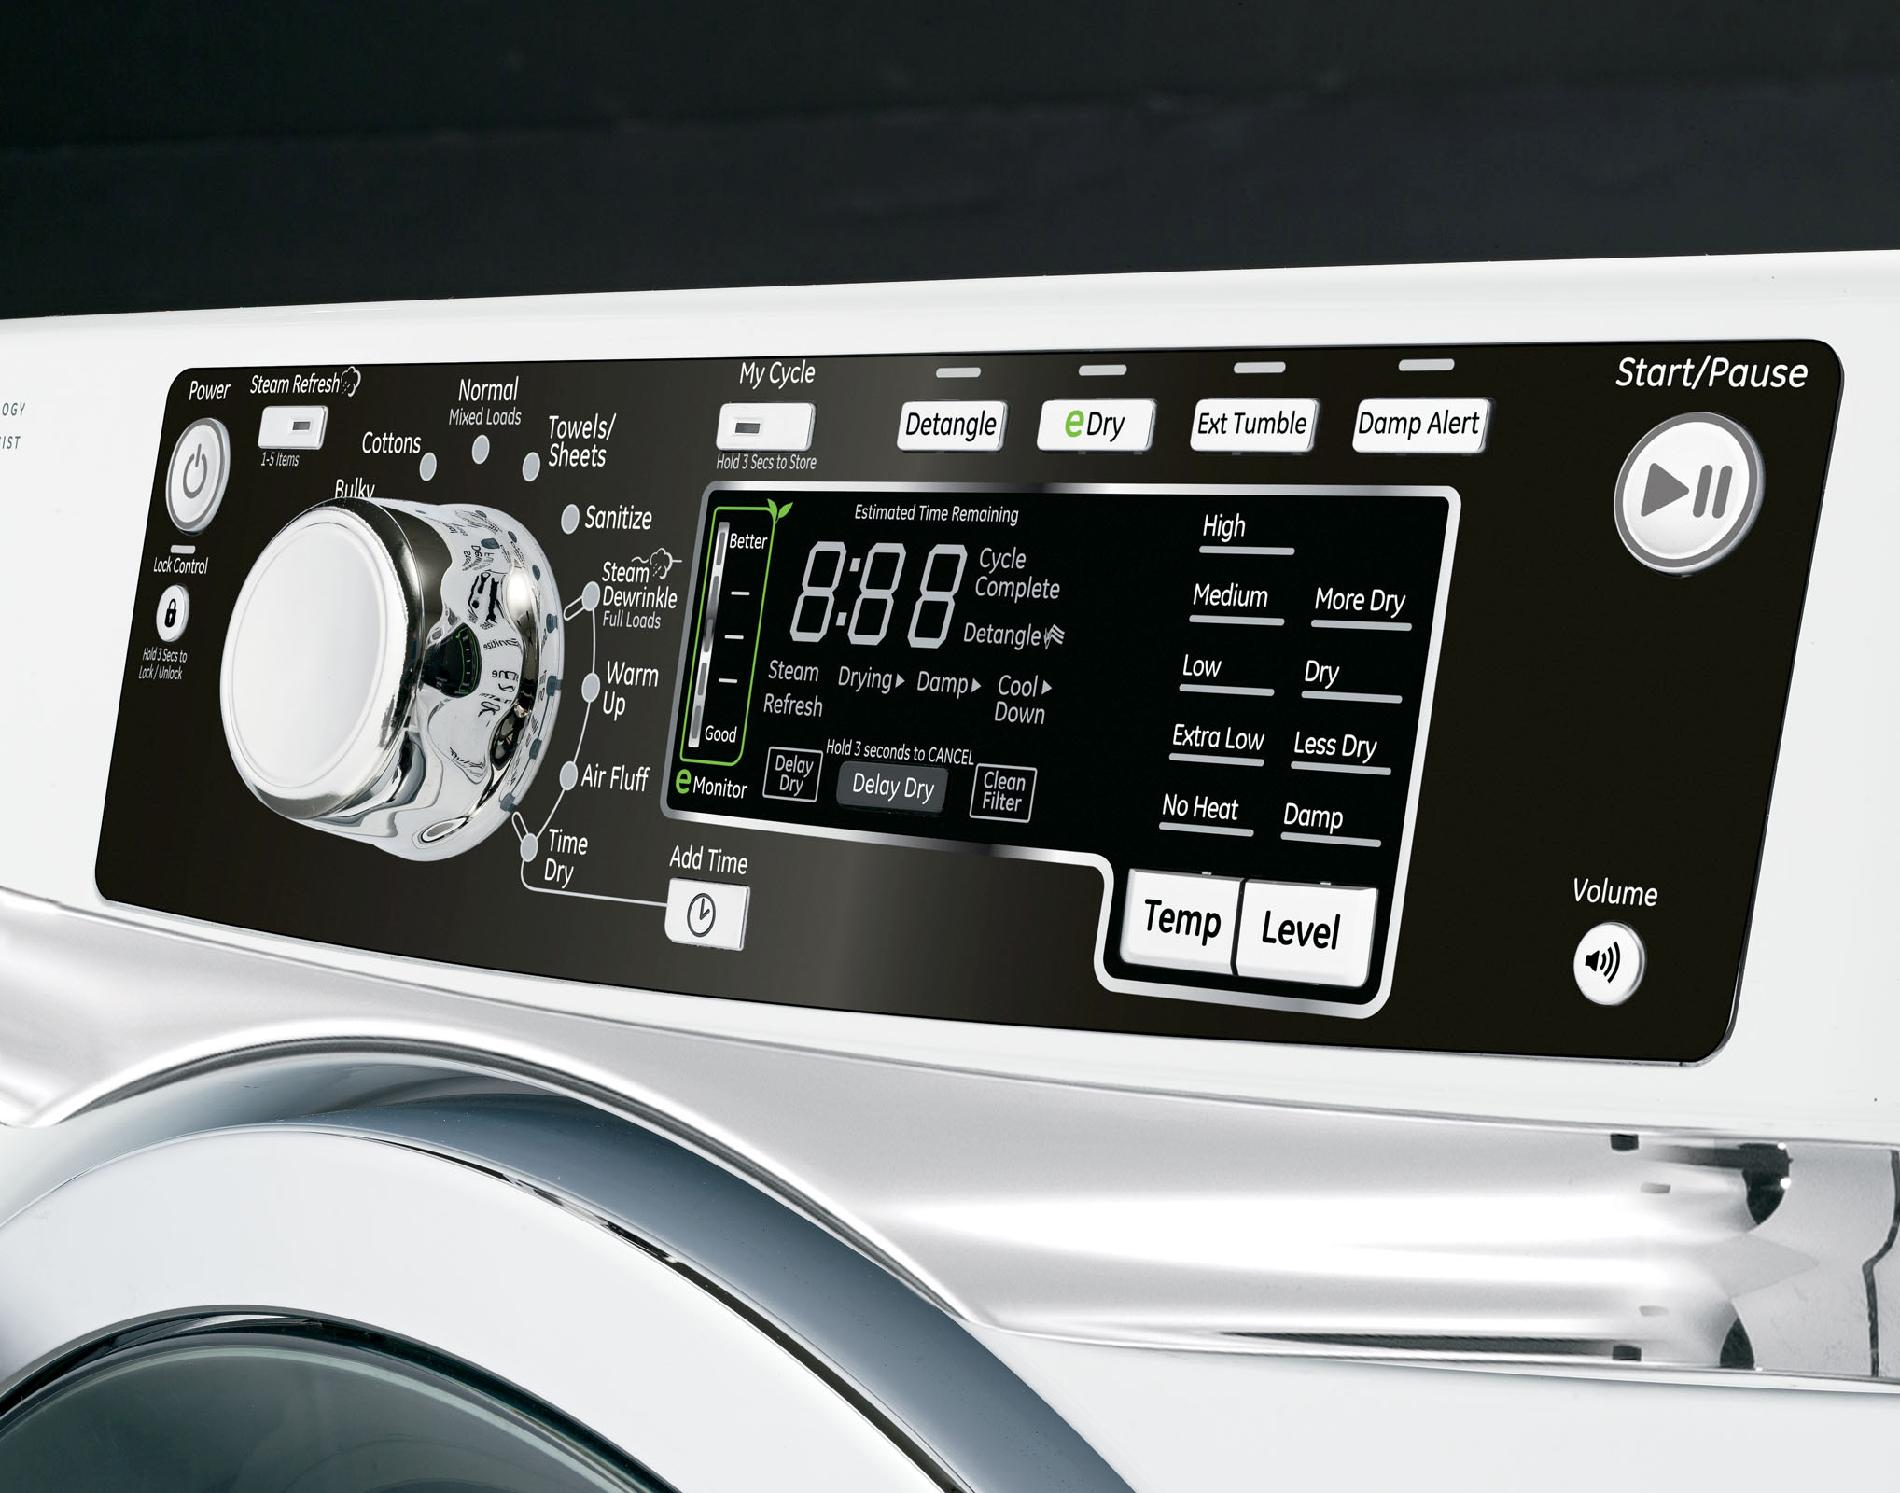 GE Appliances 8.1 cu. ft. Electric Dryer with Steam - White